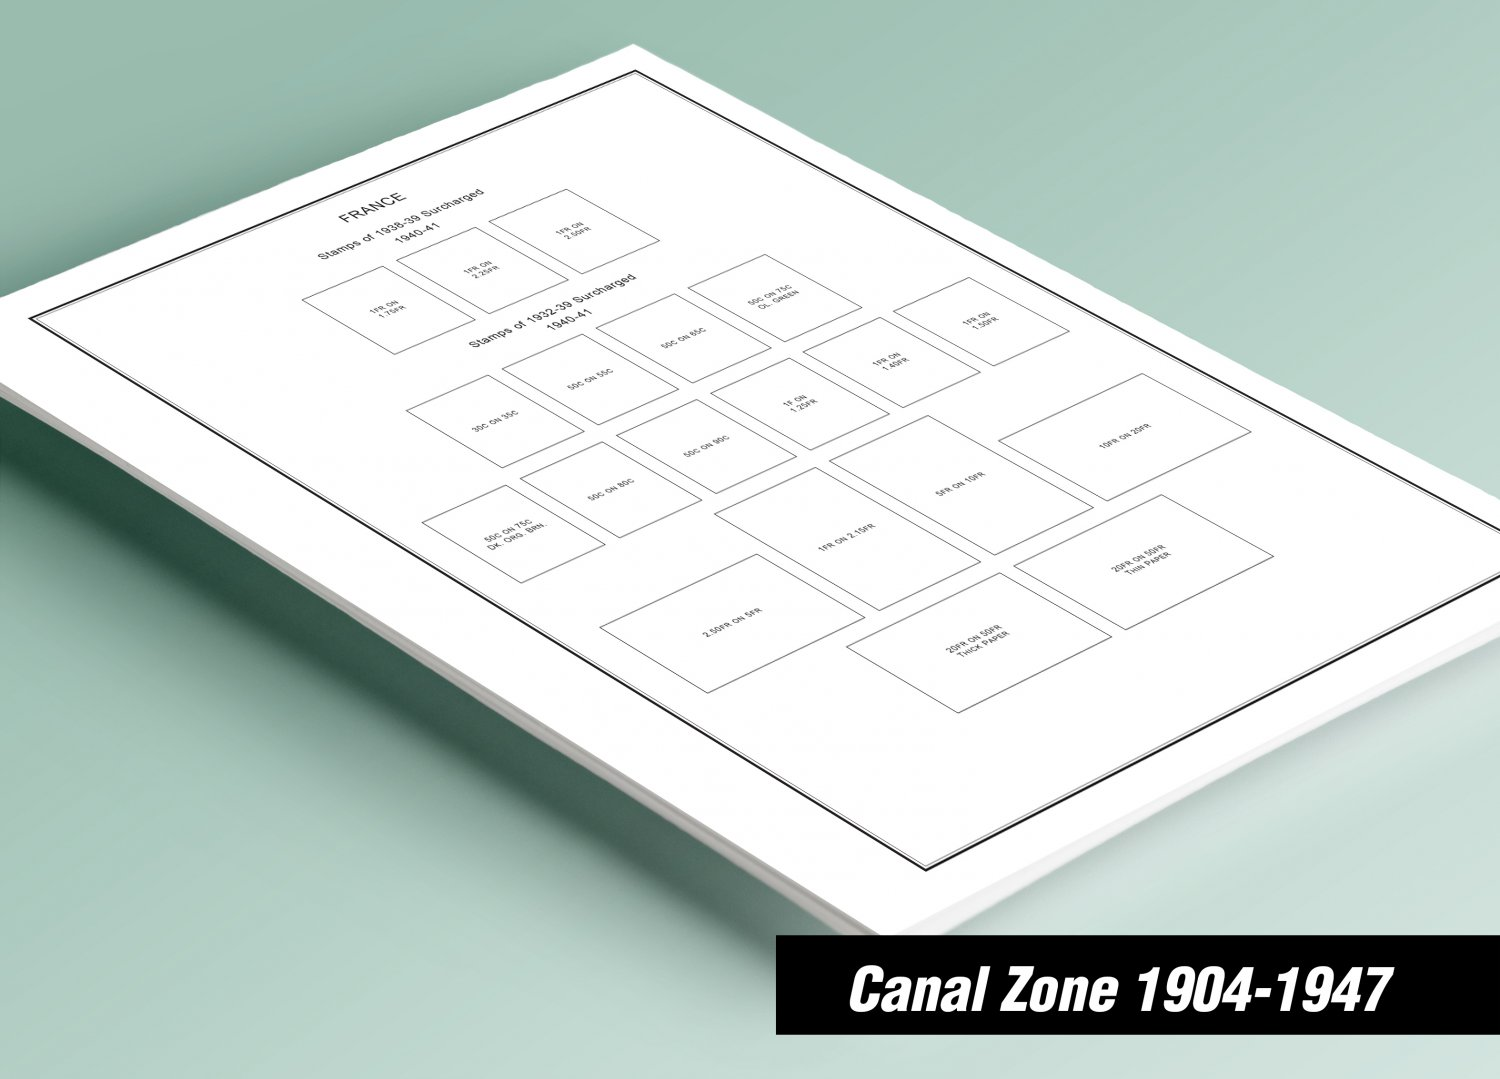 PRINTED CANAL ZONE 1904-1947 STAMP ALBUM PAGES (21 pages)